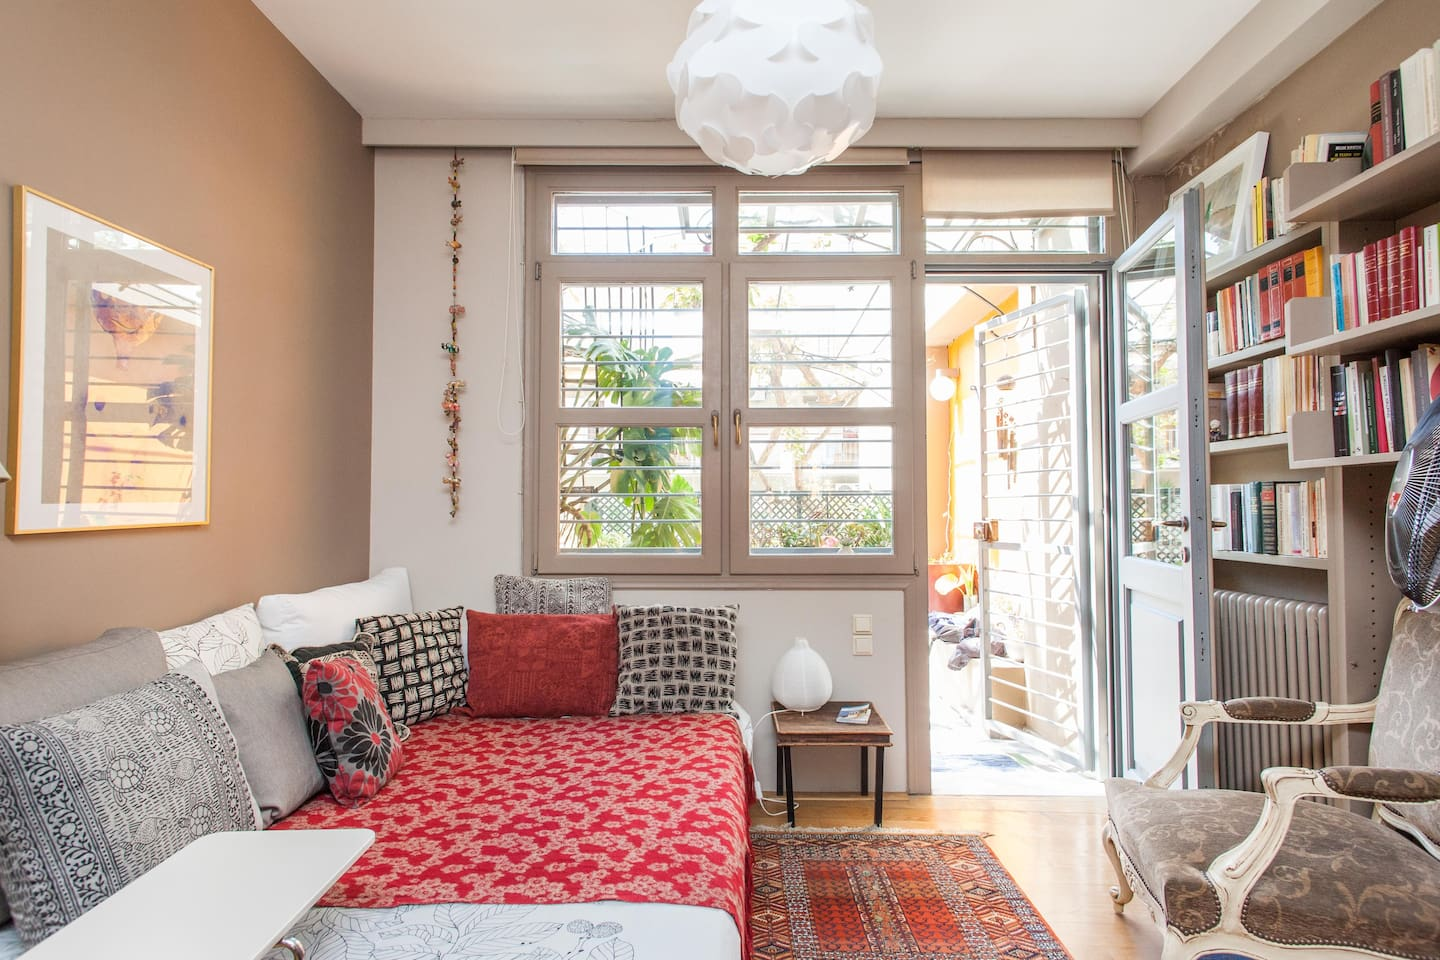 Dream studio in the heart of Athens